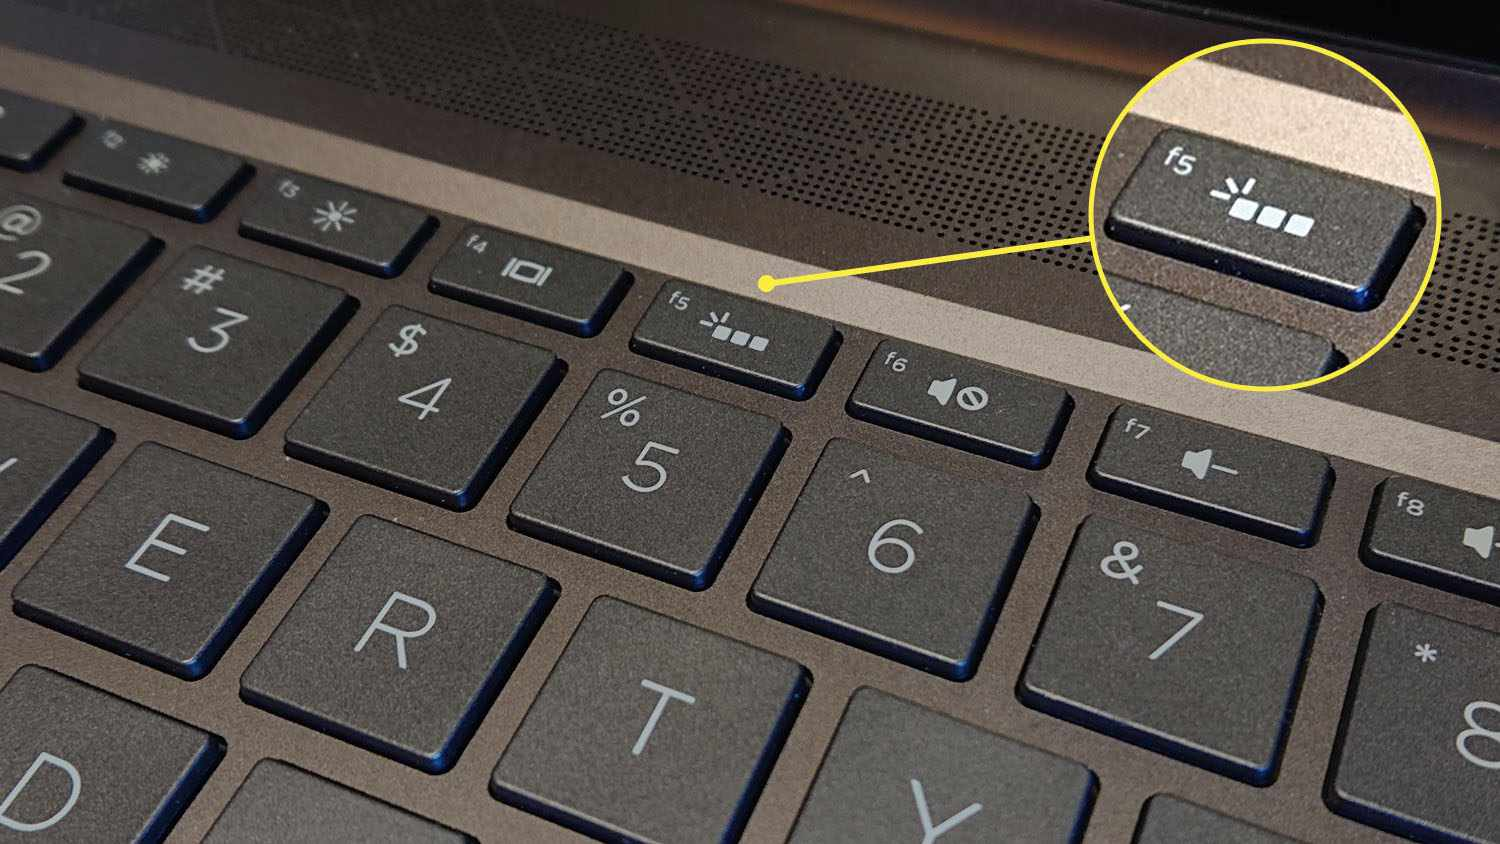 Keyboard backlighting key highlighted on an HP Spectre x360 13.